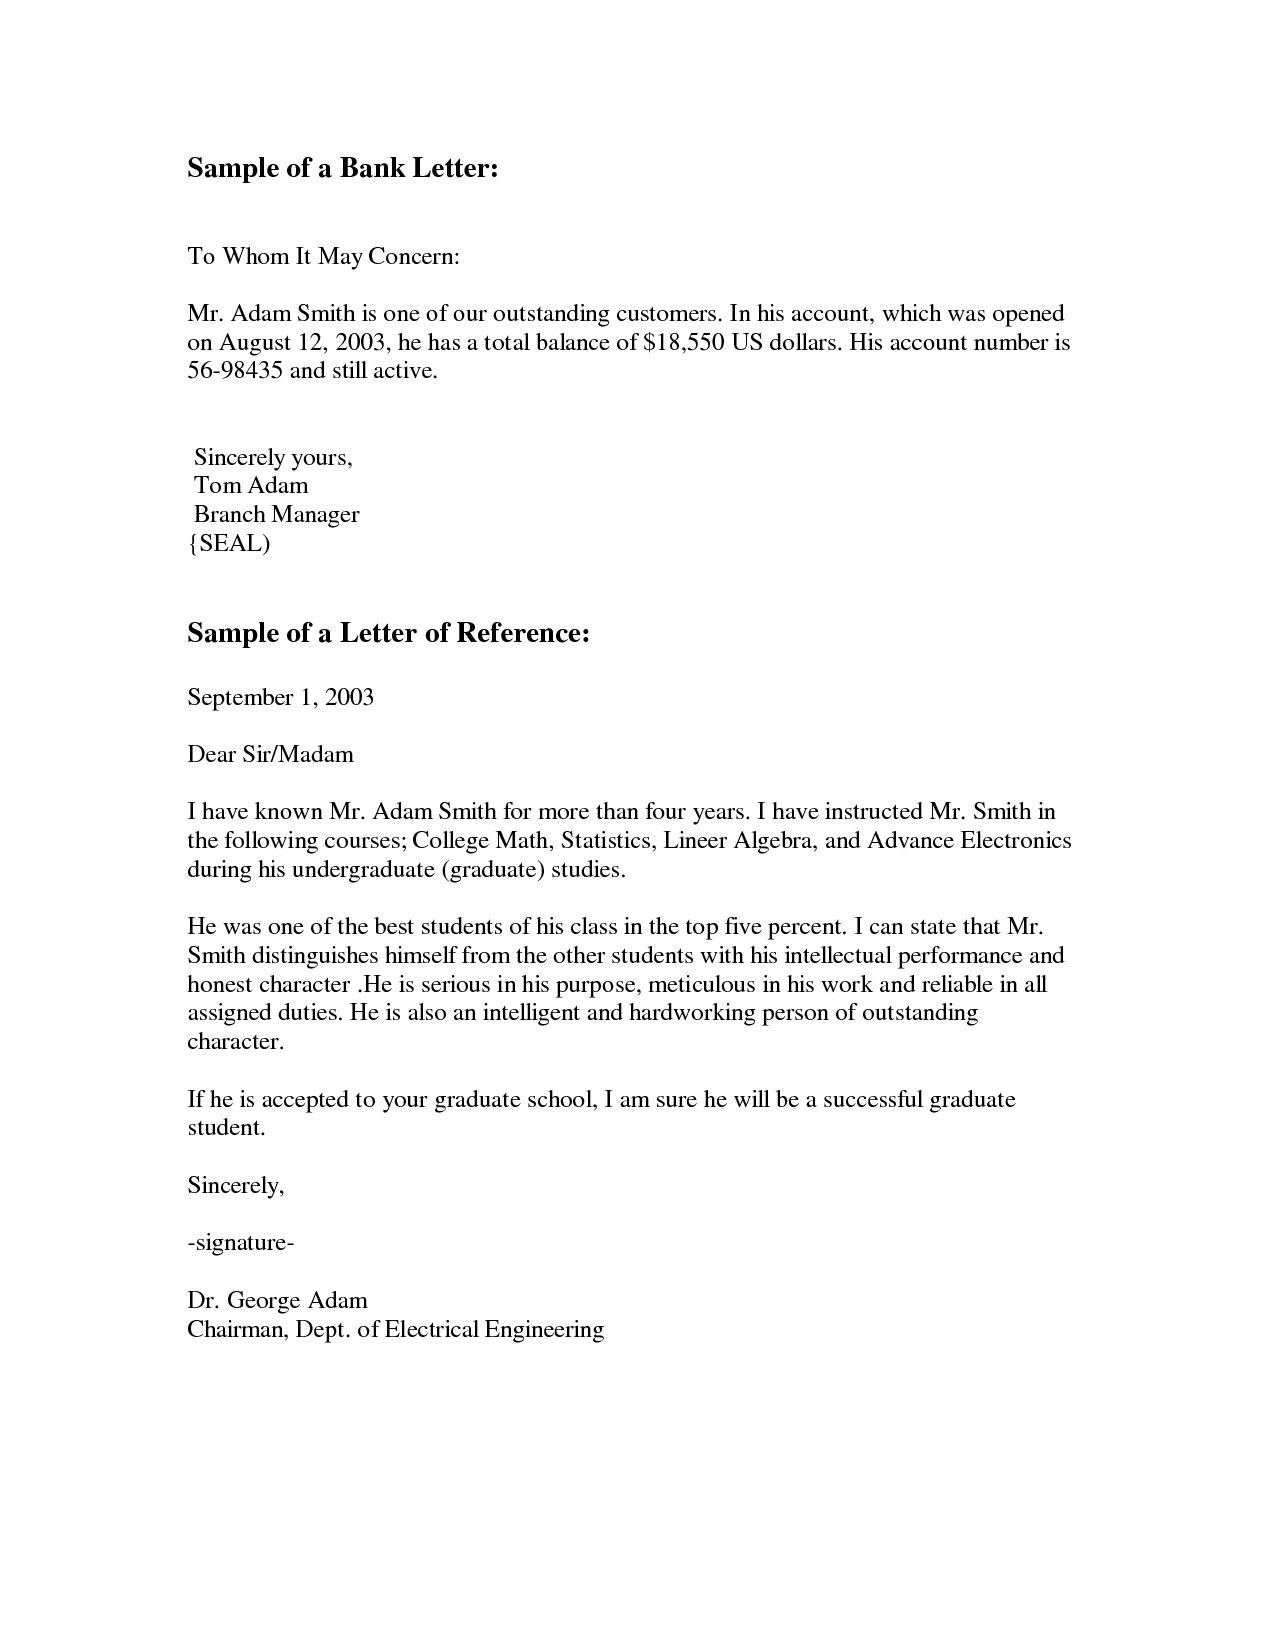 professional letter template Collection-Business Bylaws Template Best Formal Letter Template Unique Bylaws Template 0d Wallpapers 50 2-p